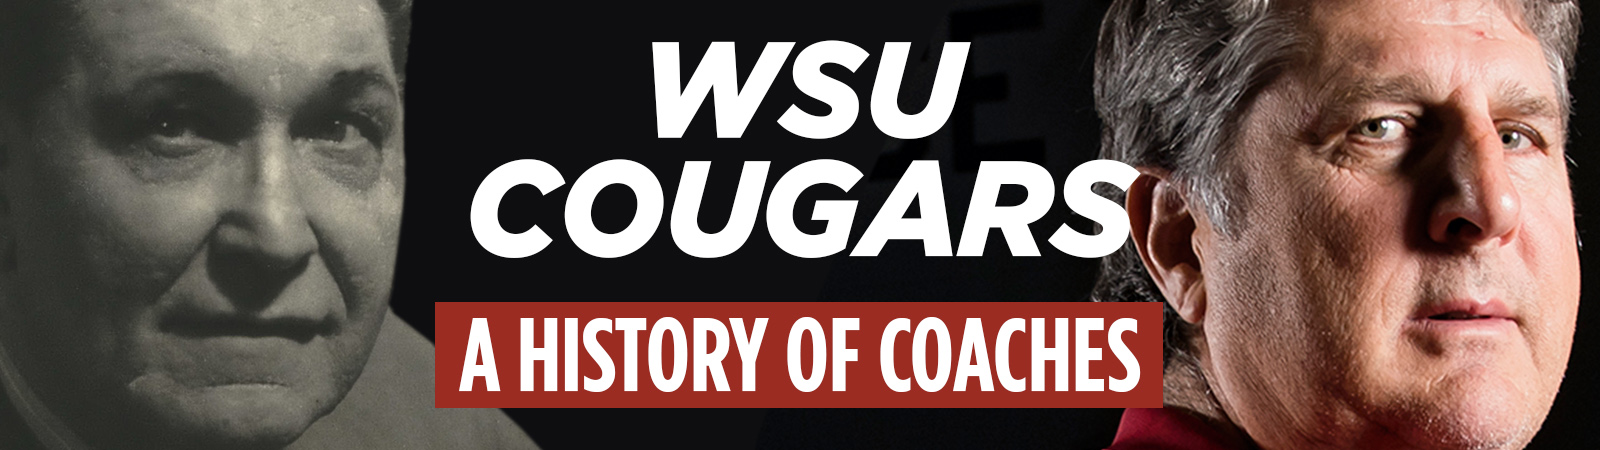 WSU football coach history